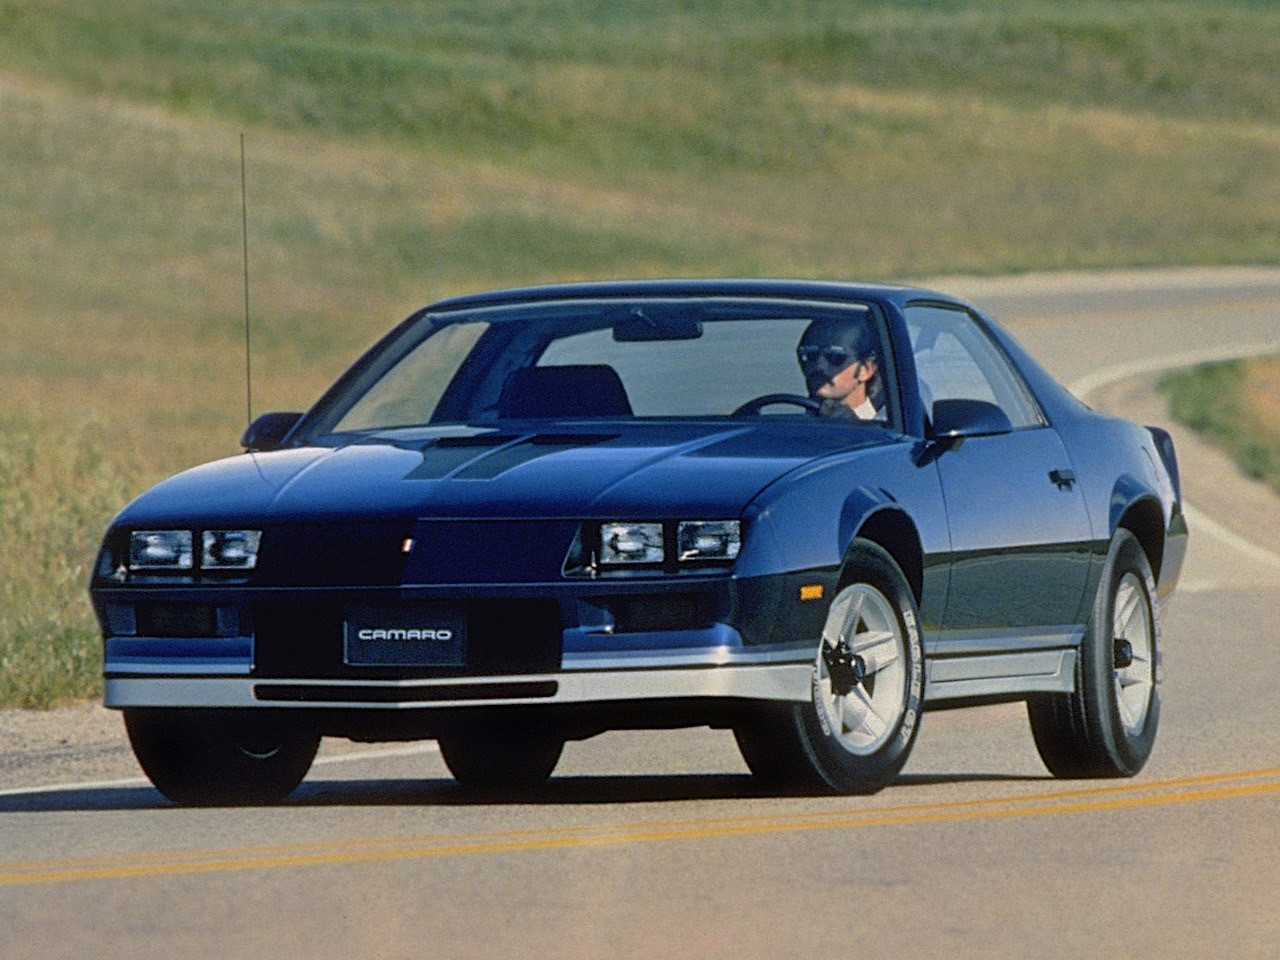 CHEVROLET Camaro specs & photos - 1982, 1983, 1984, 1985 ...